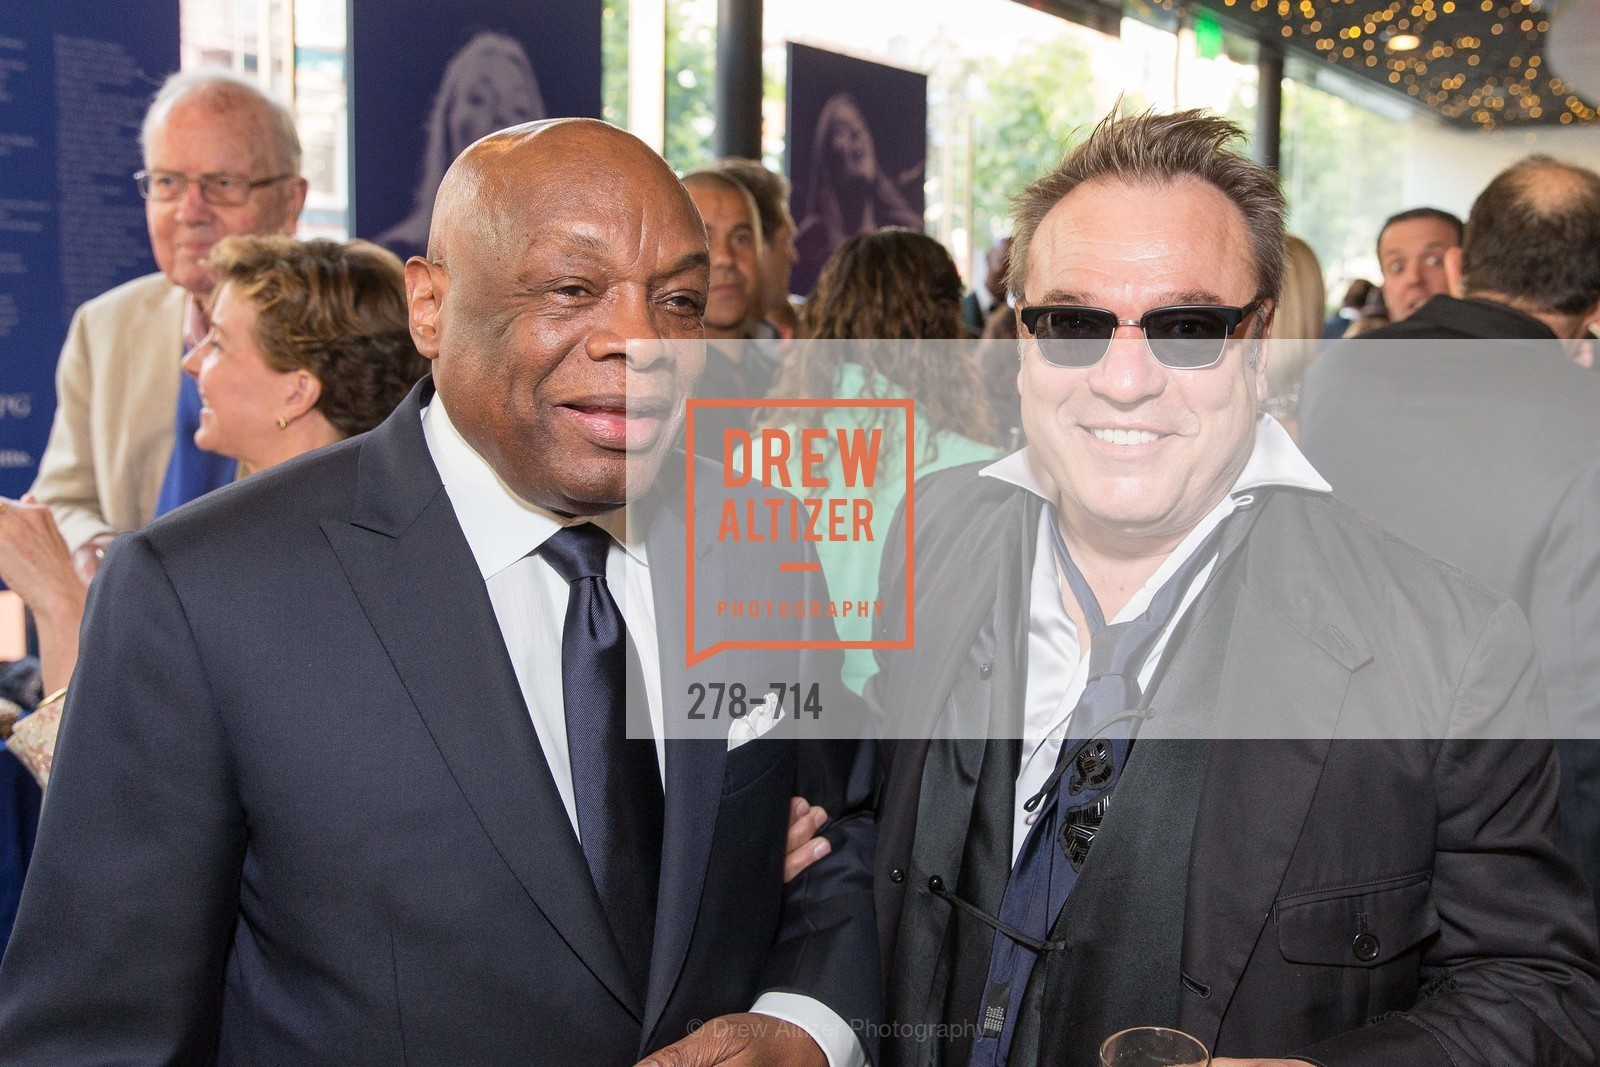 Willie Brown, Stanlee Gatti, SFJAZZ Gala 2015 Honors Joni Mitchell with Lifetime Achievement Award, US, May 9th, 2015,Drew Altizer, Drew Altizer Photography, full-service agency, private events, San Francisco photographer, photographer california